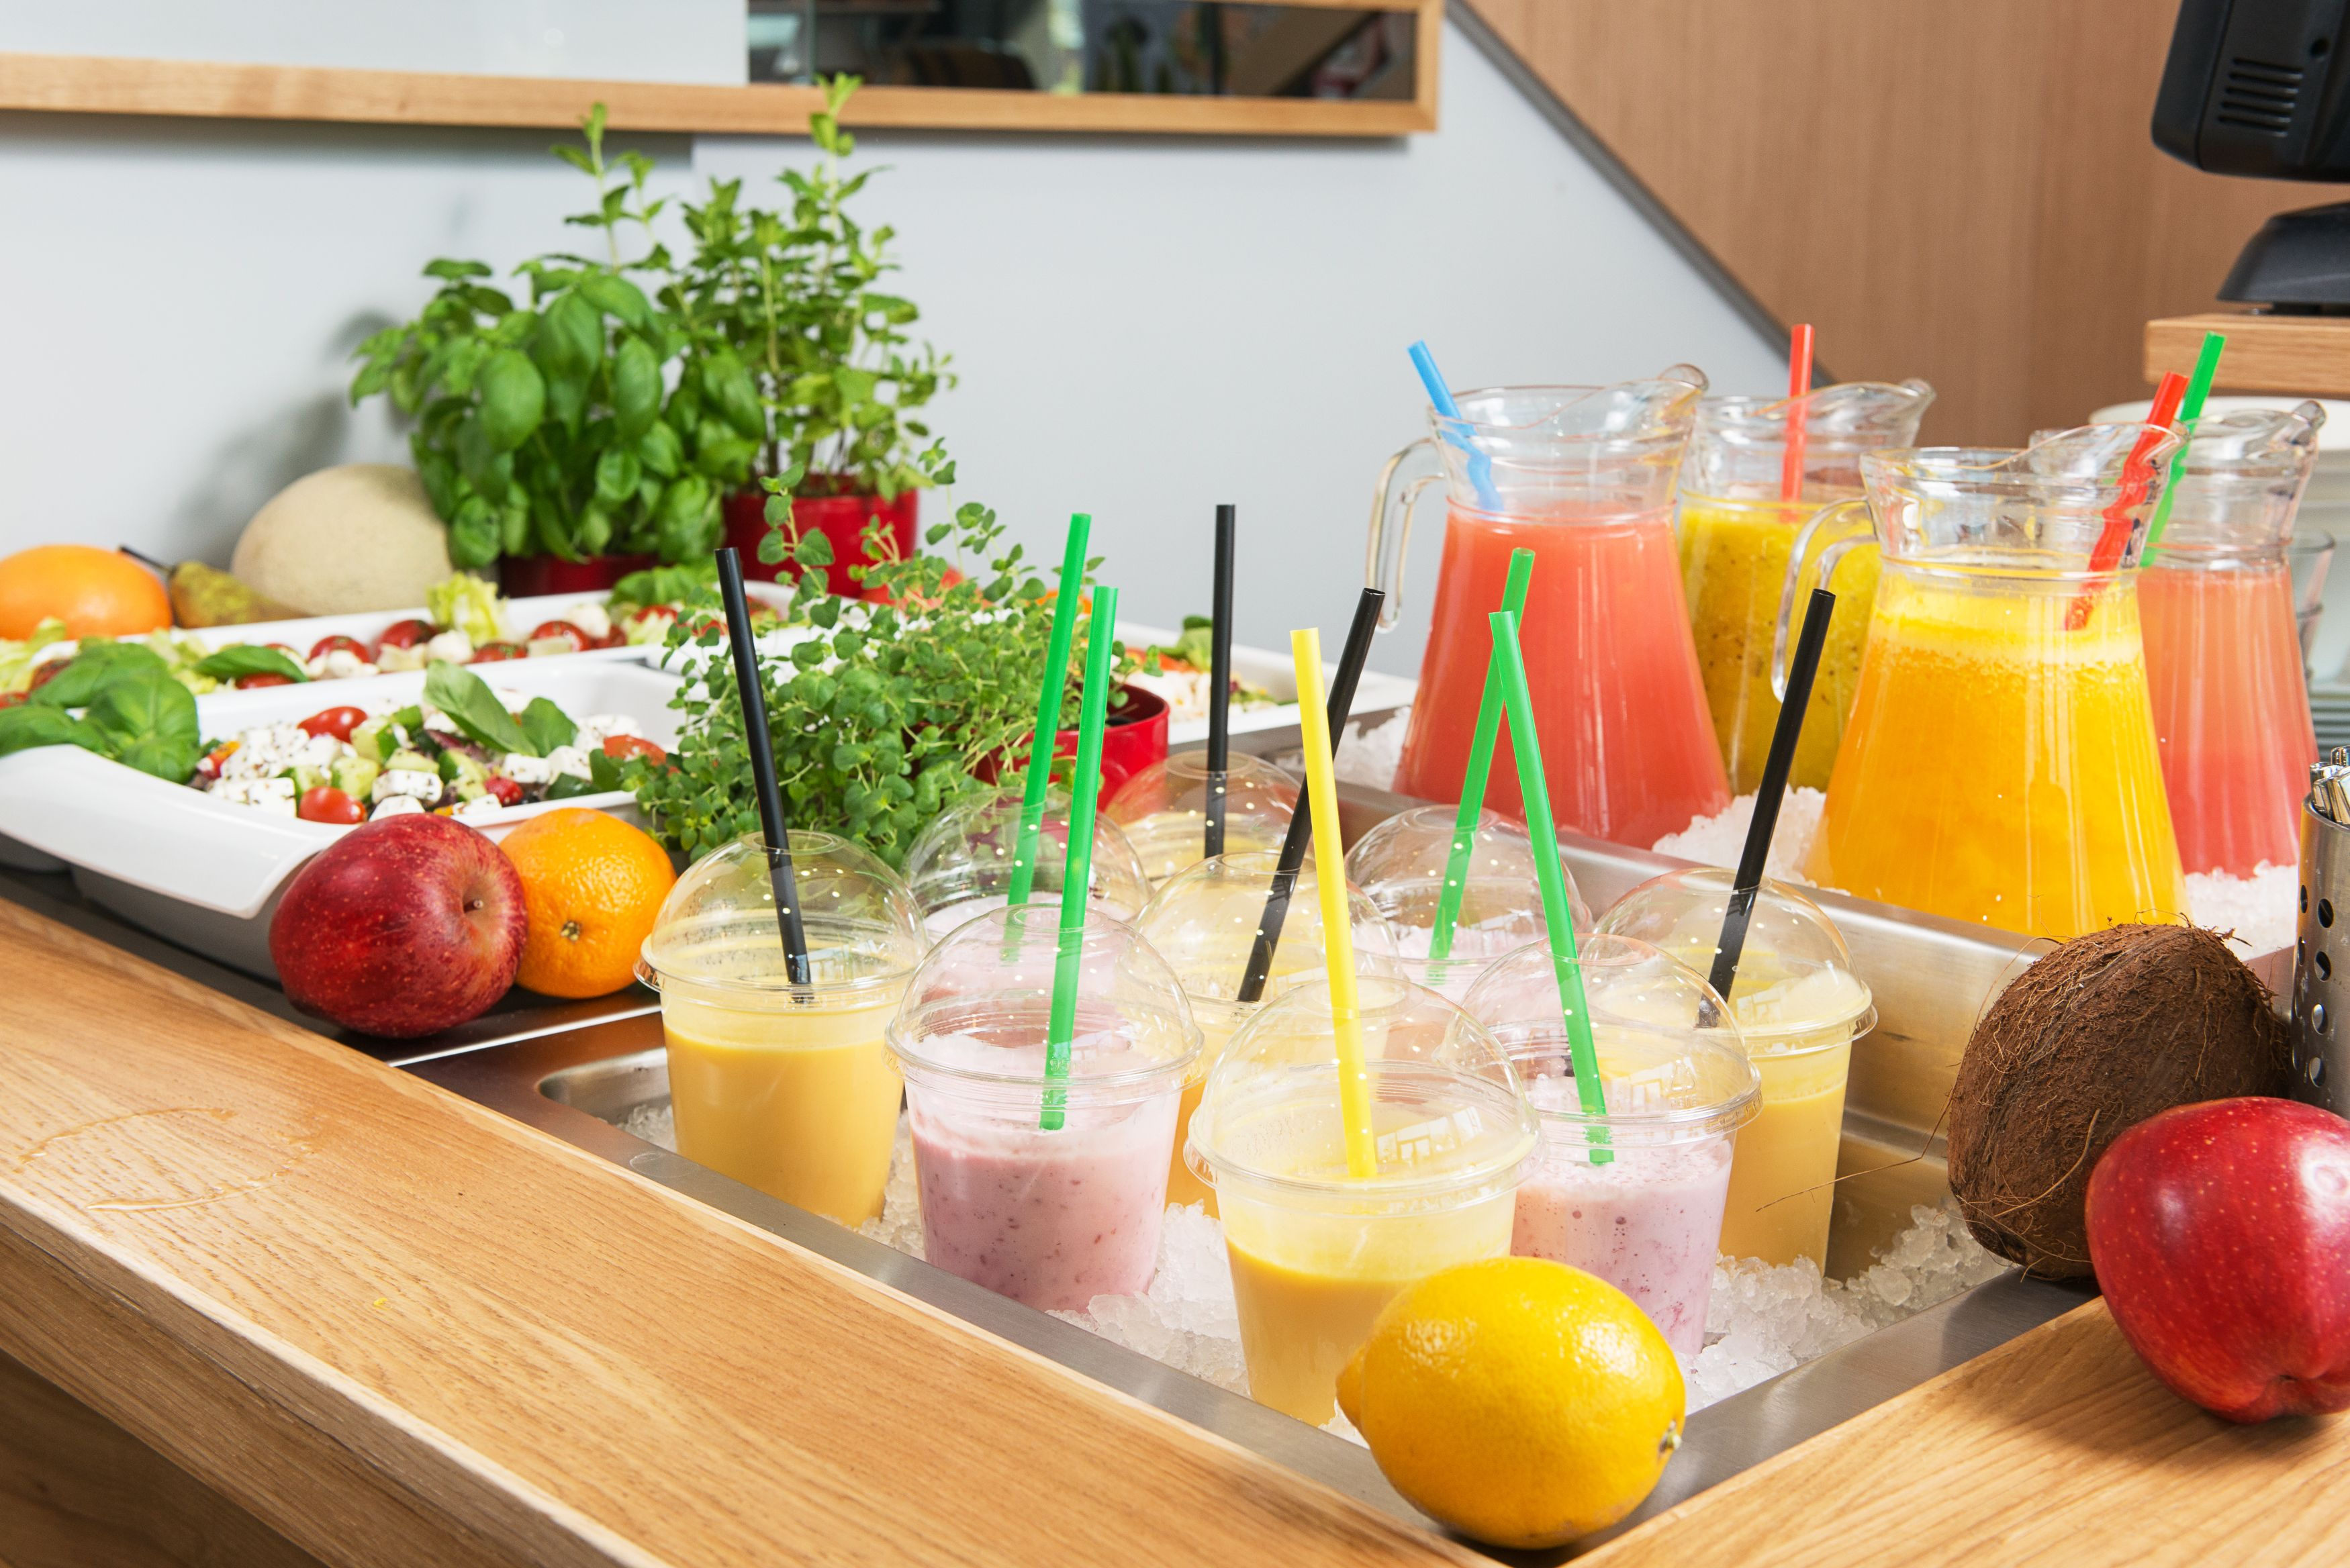 Pin By Dobry Hotel On Bazar Smakow Food Serving Bowls Fruit